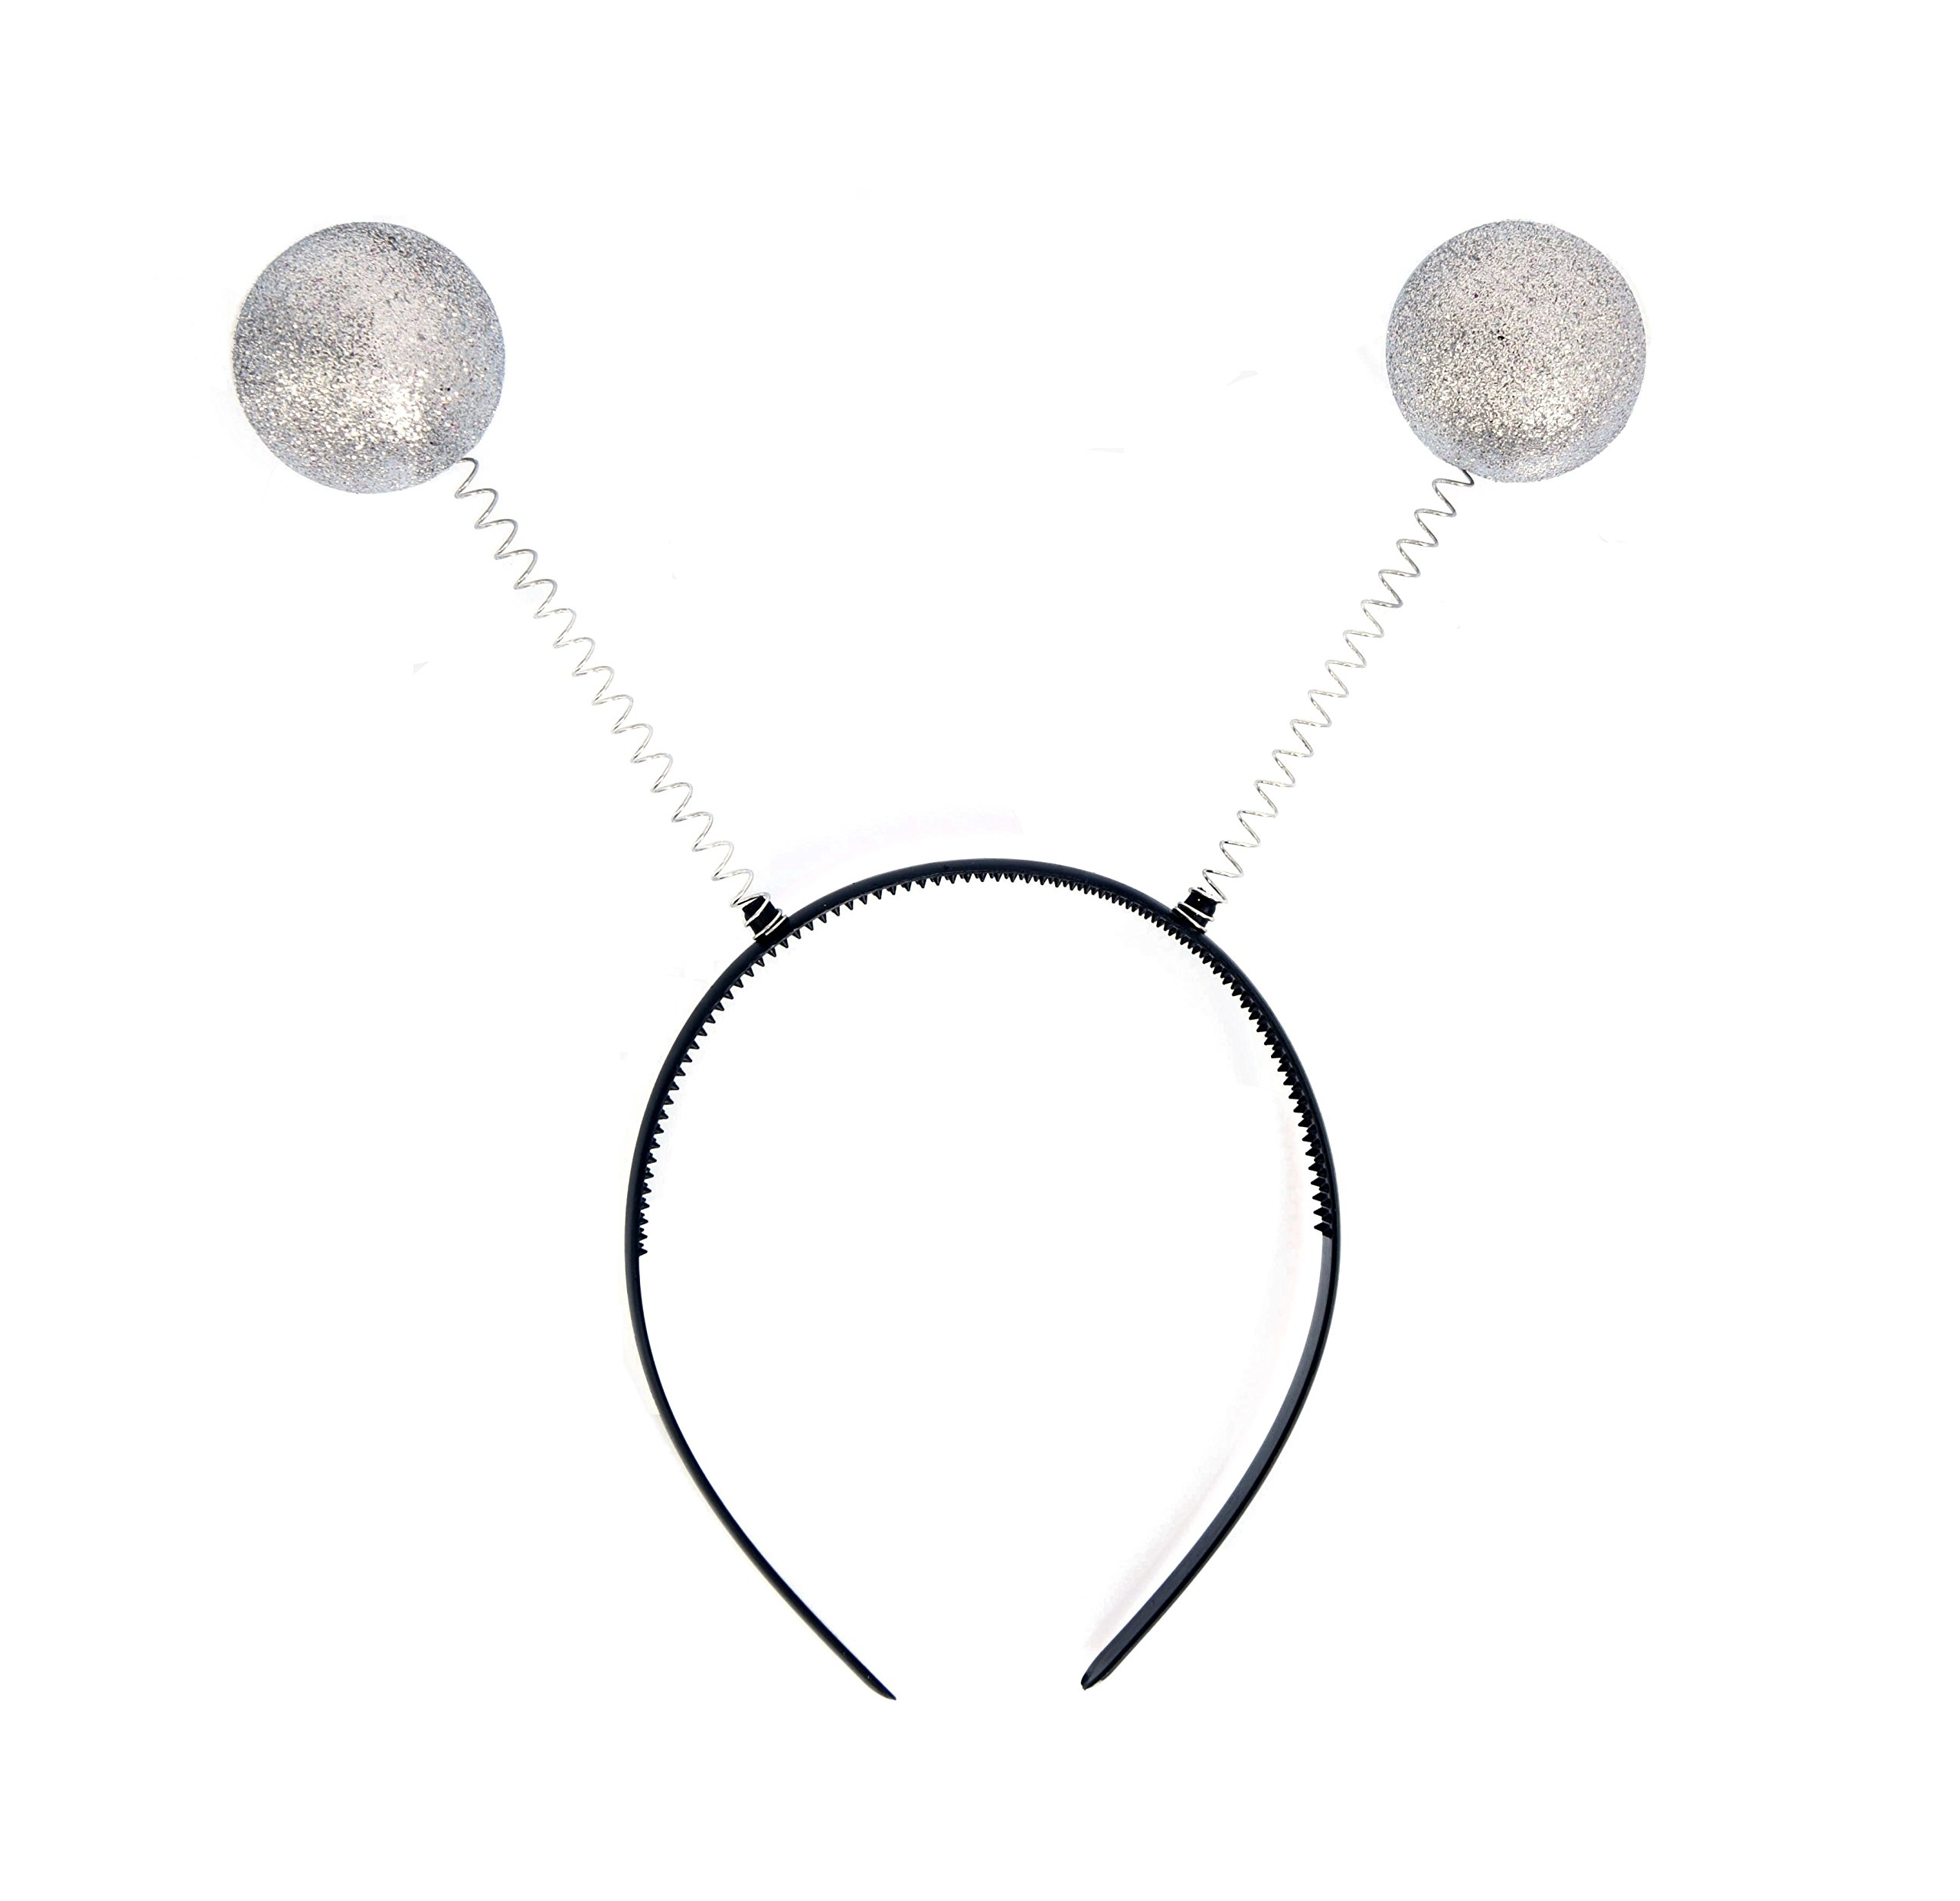 NNasell Crazy Martian Antenna Headband Boppers - Funny Party Accessory Costume addon (Silver)